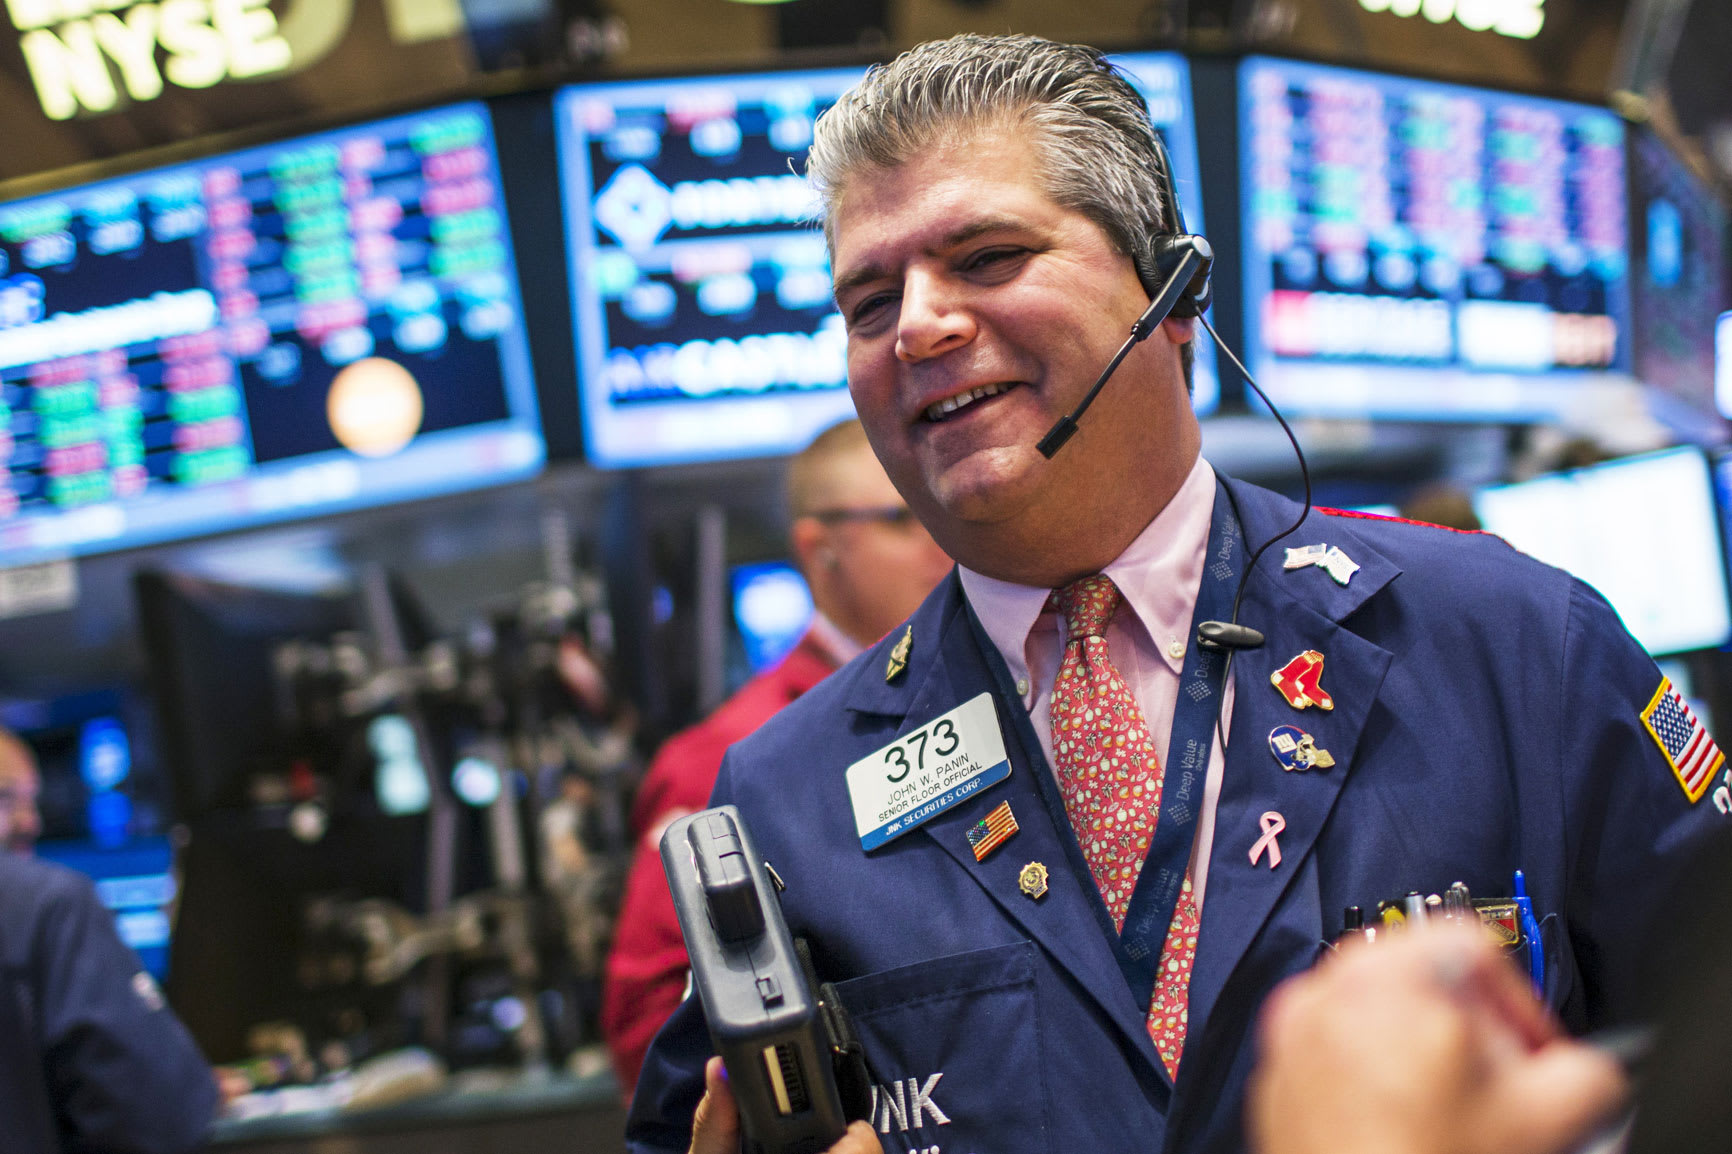 S&P 500, Dow hit all-time highs as coronavirus spread slows